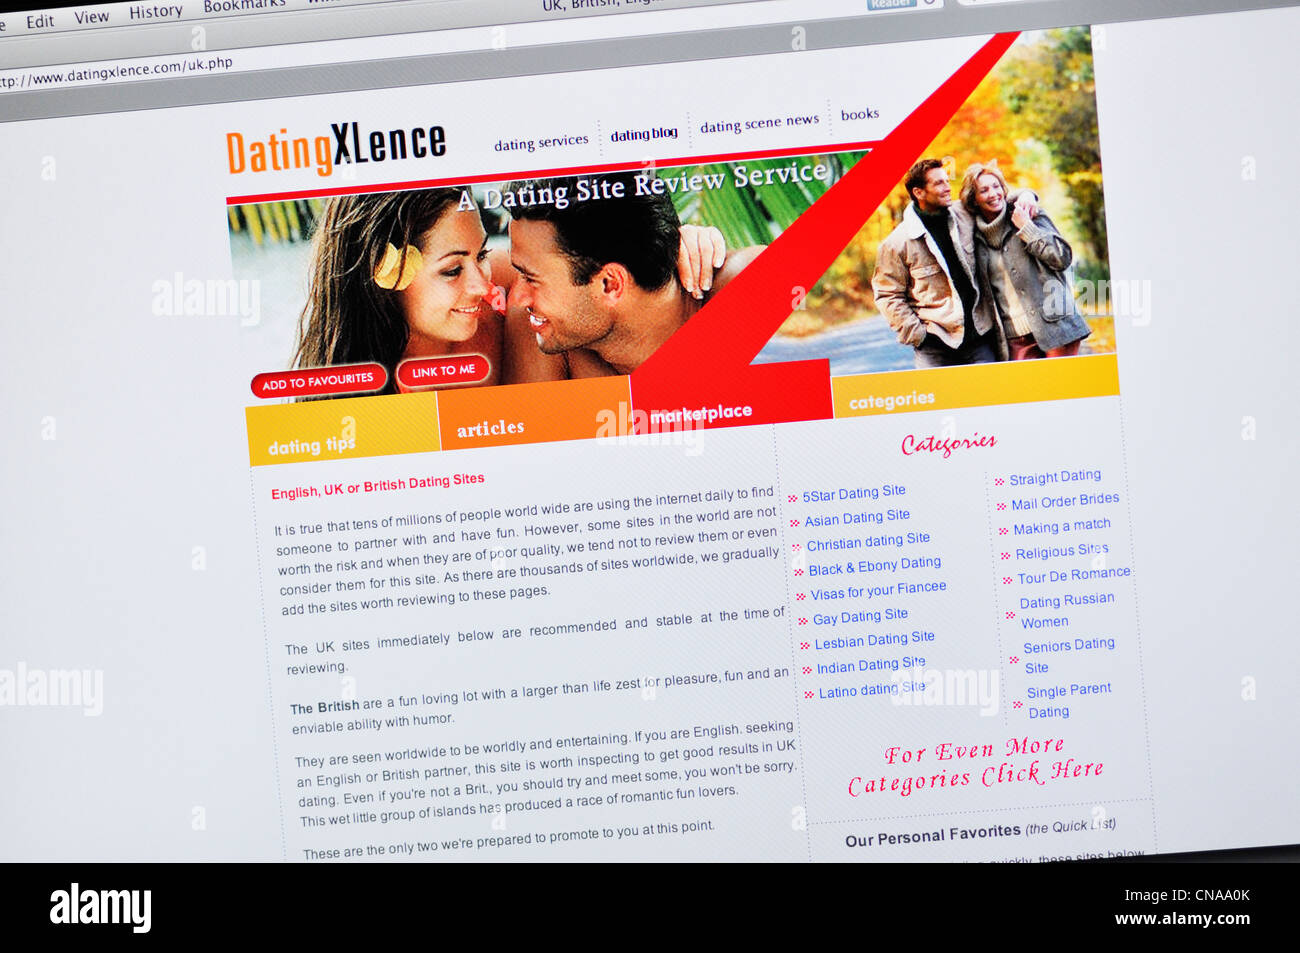 How to look up user on dating sites